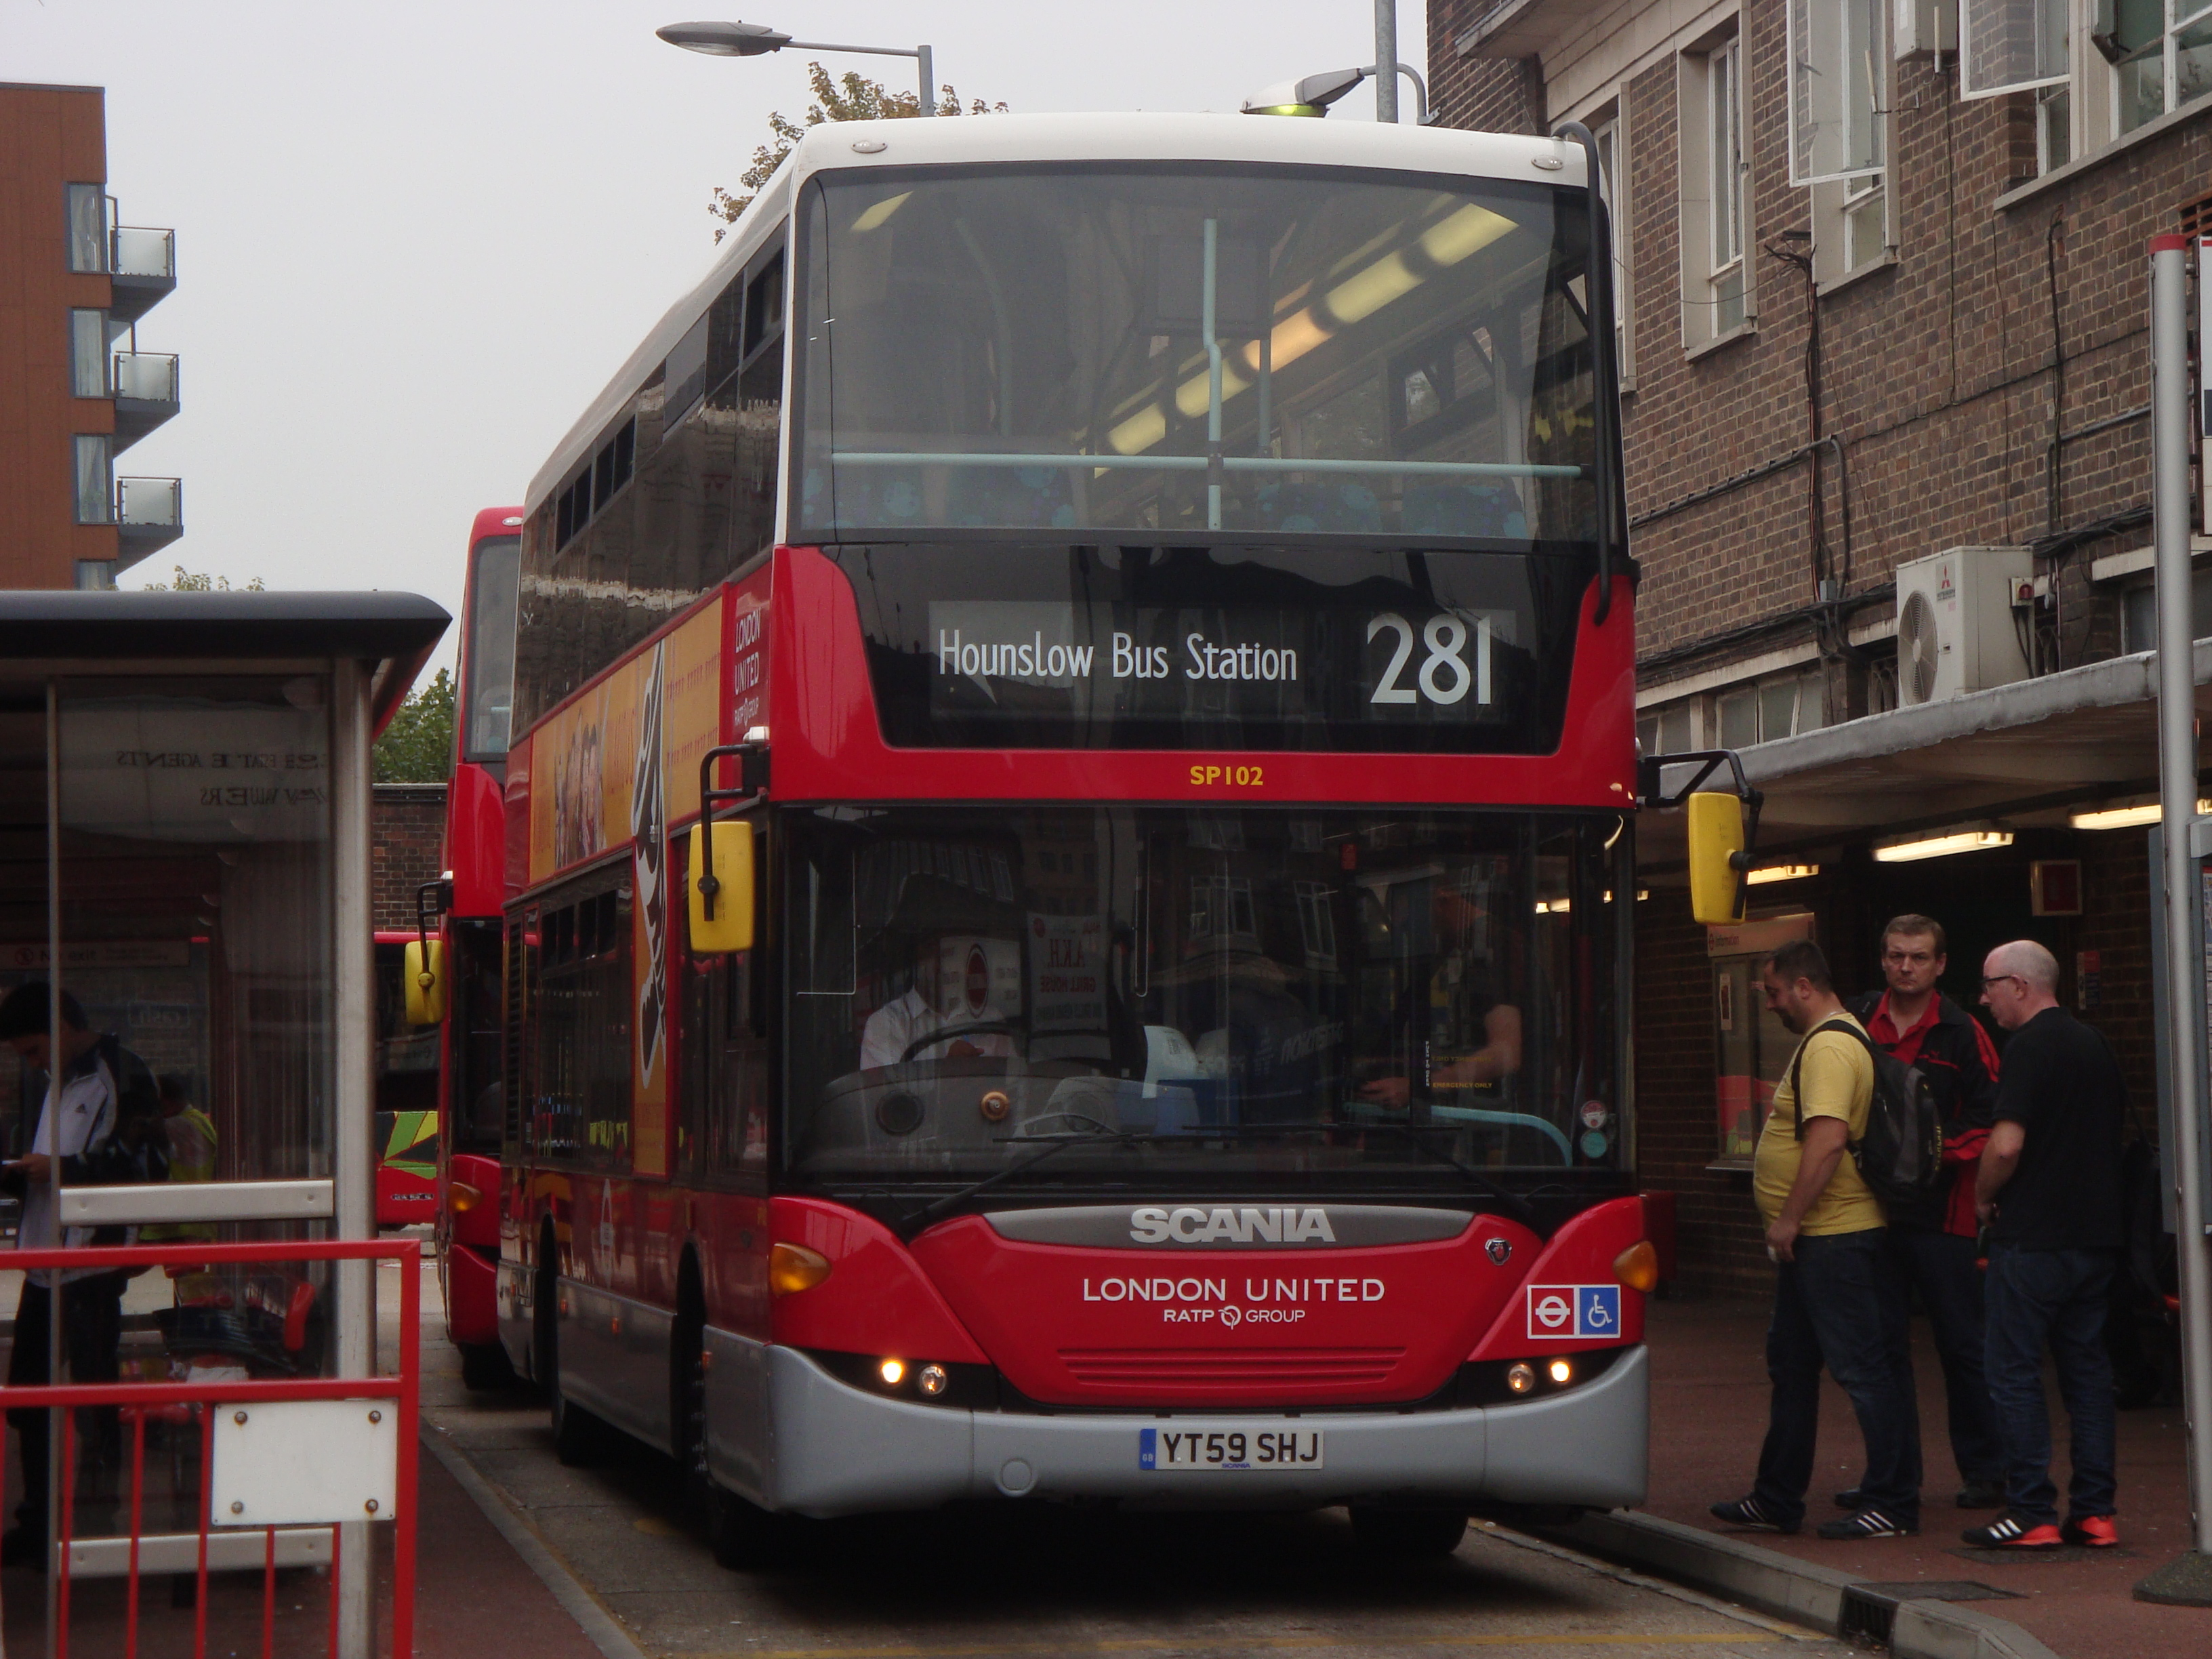 file:au morandarte flickr london united sp102 (2000s lu livery) on